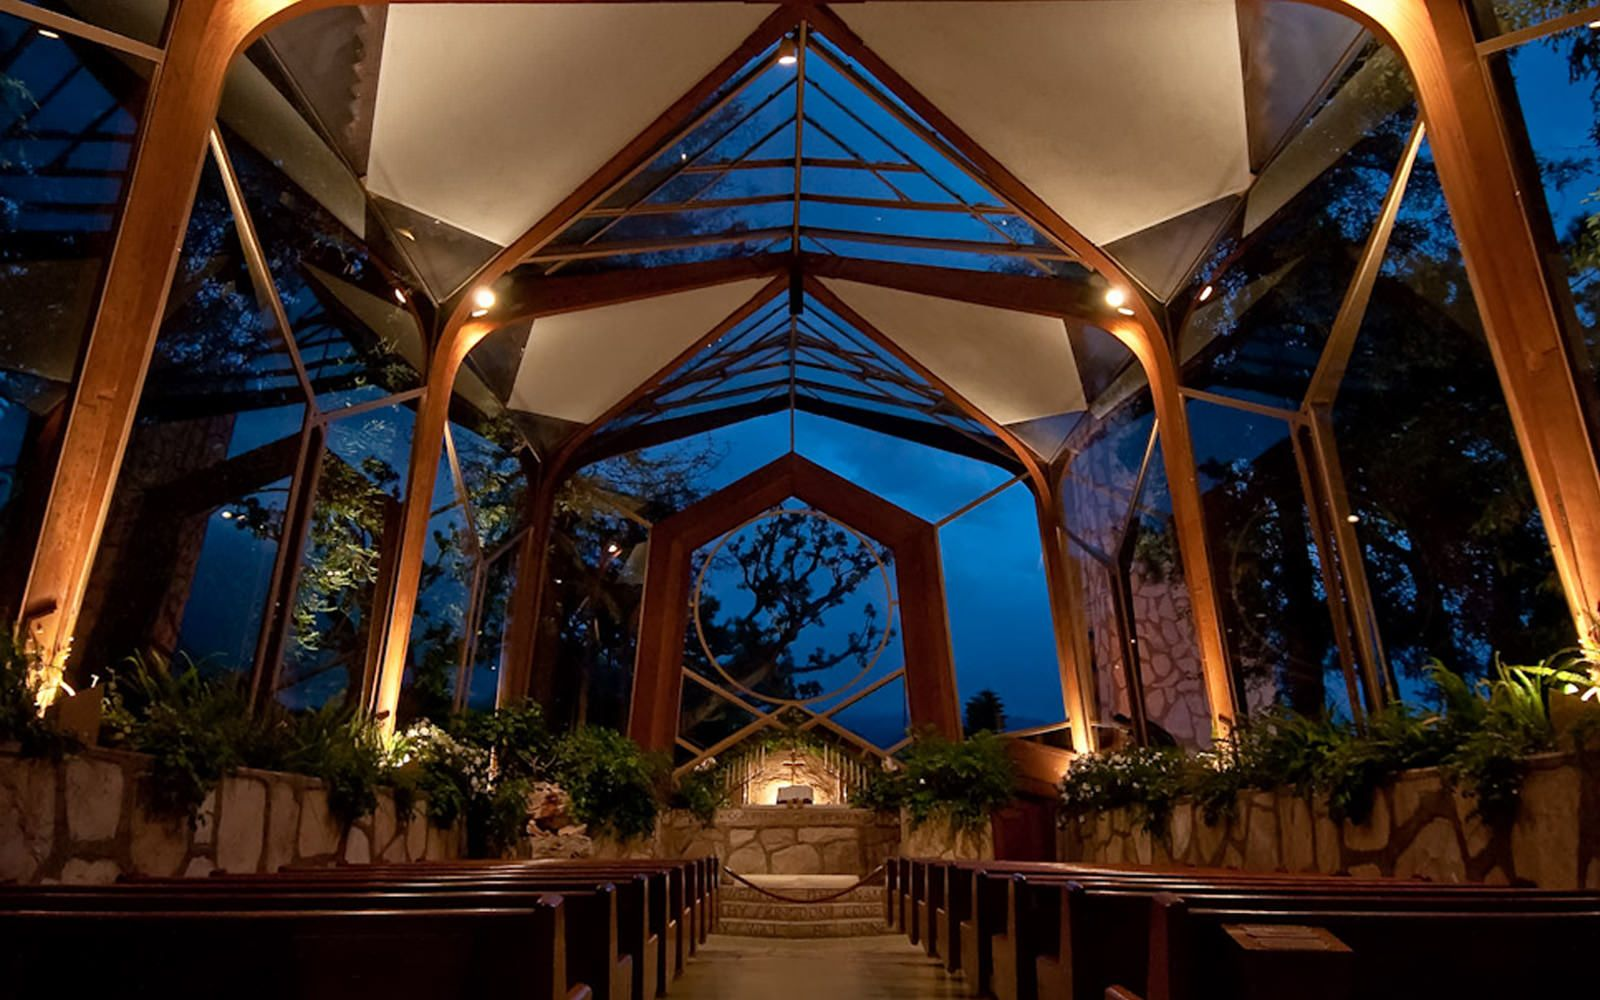 Wayfarers Chapel Best Beach Wedding Locations Los Angeles Area Small Venue Southern